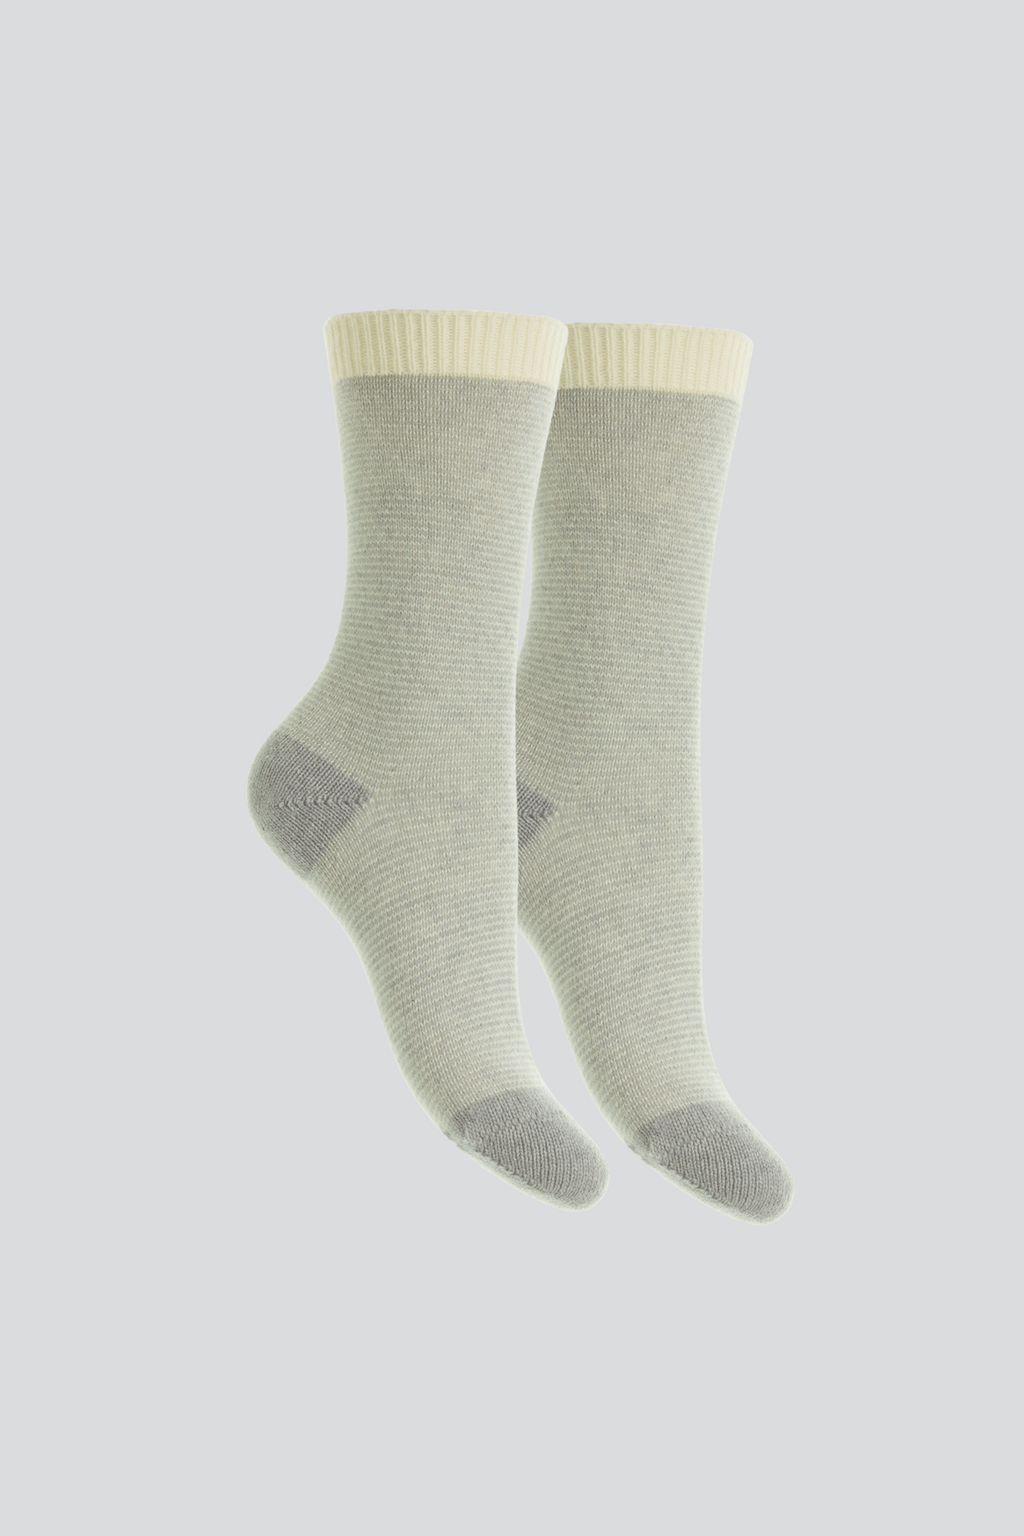 Striped Cashmere Socks Socks Lavender Hill Clothing